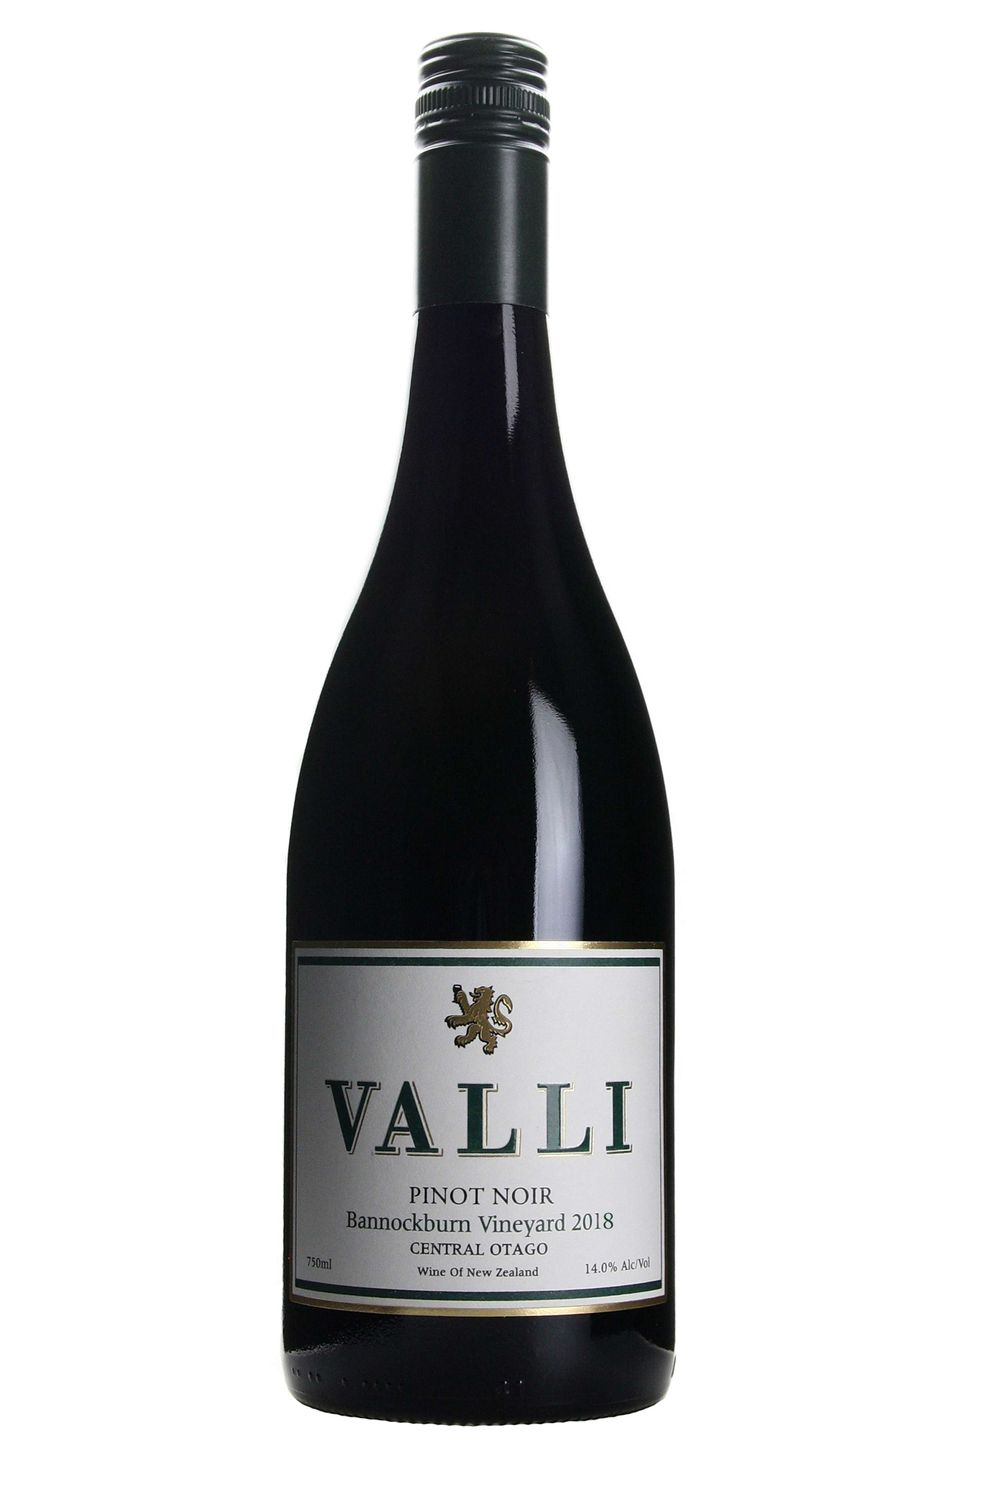 Valli Bannockburn Vineyard Pinot Noir 2018